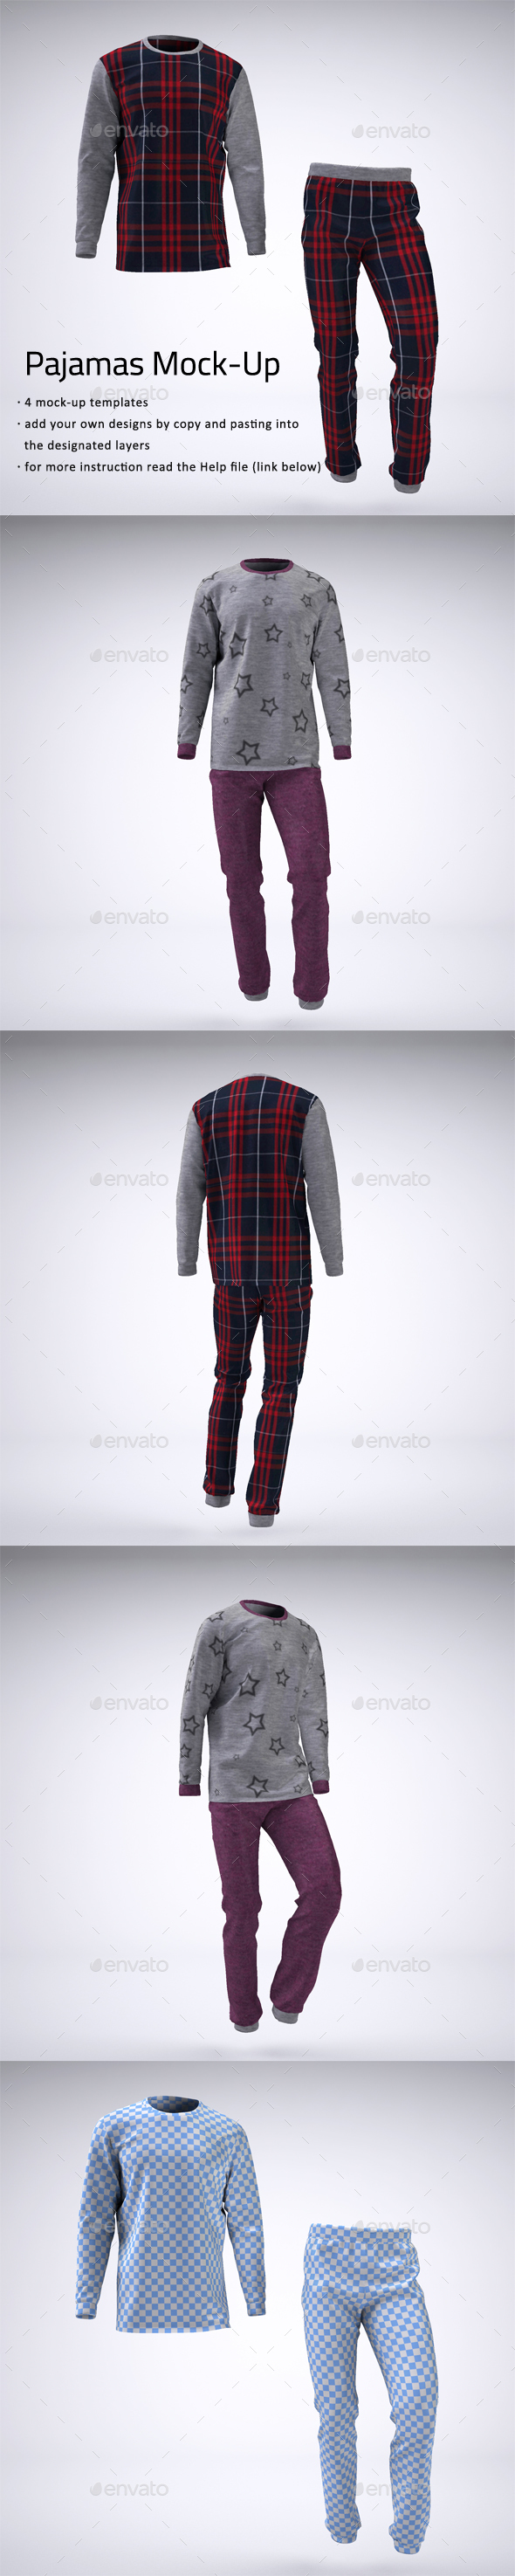 Pajamas or Pyjamas Mock-Up - Apparel Product Mock-Ups